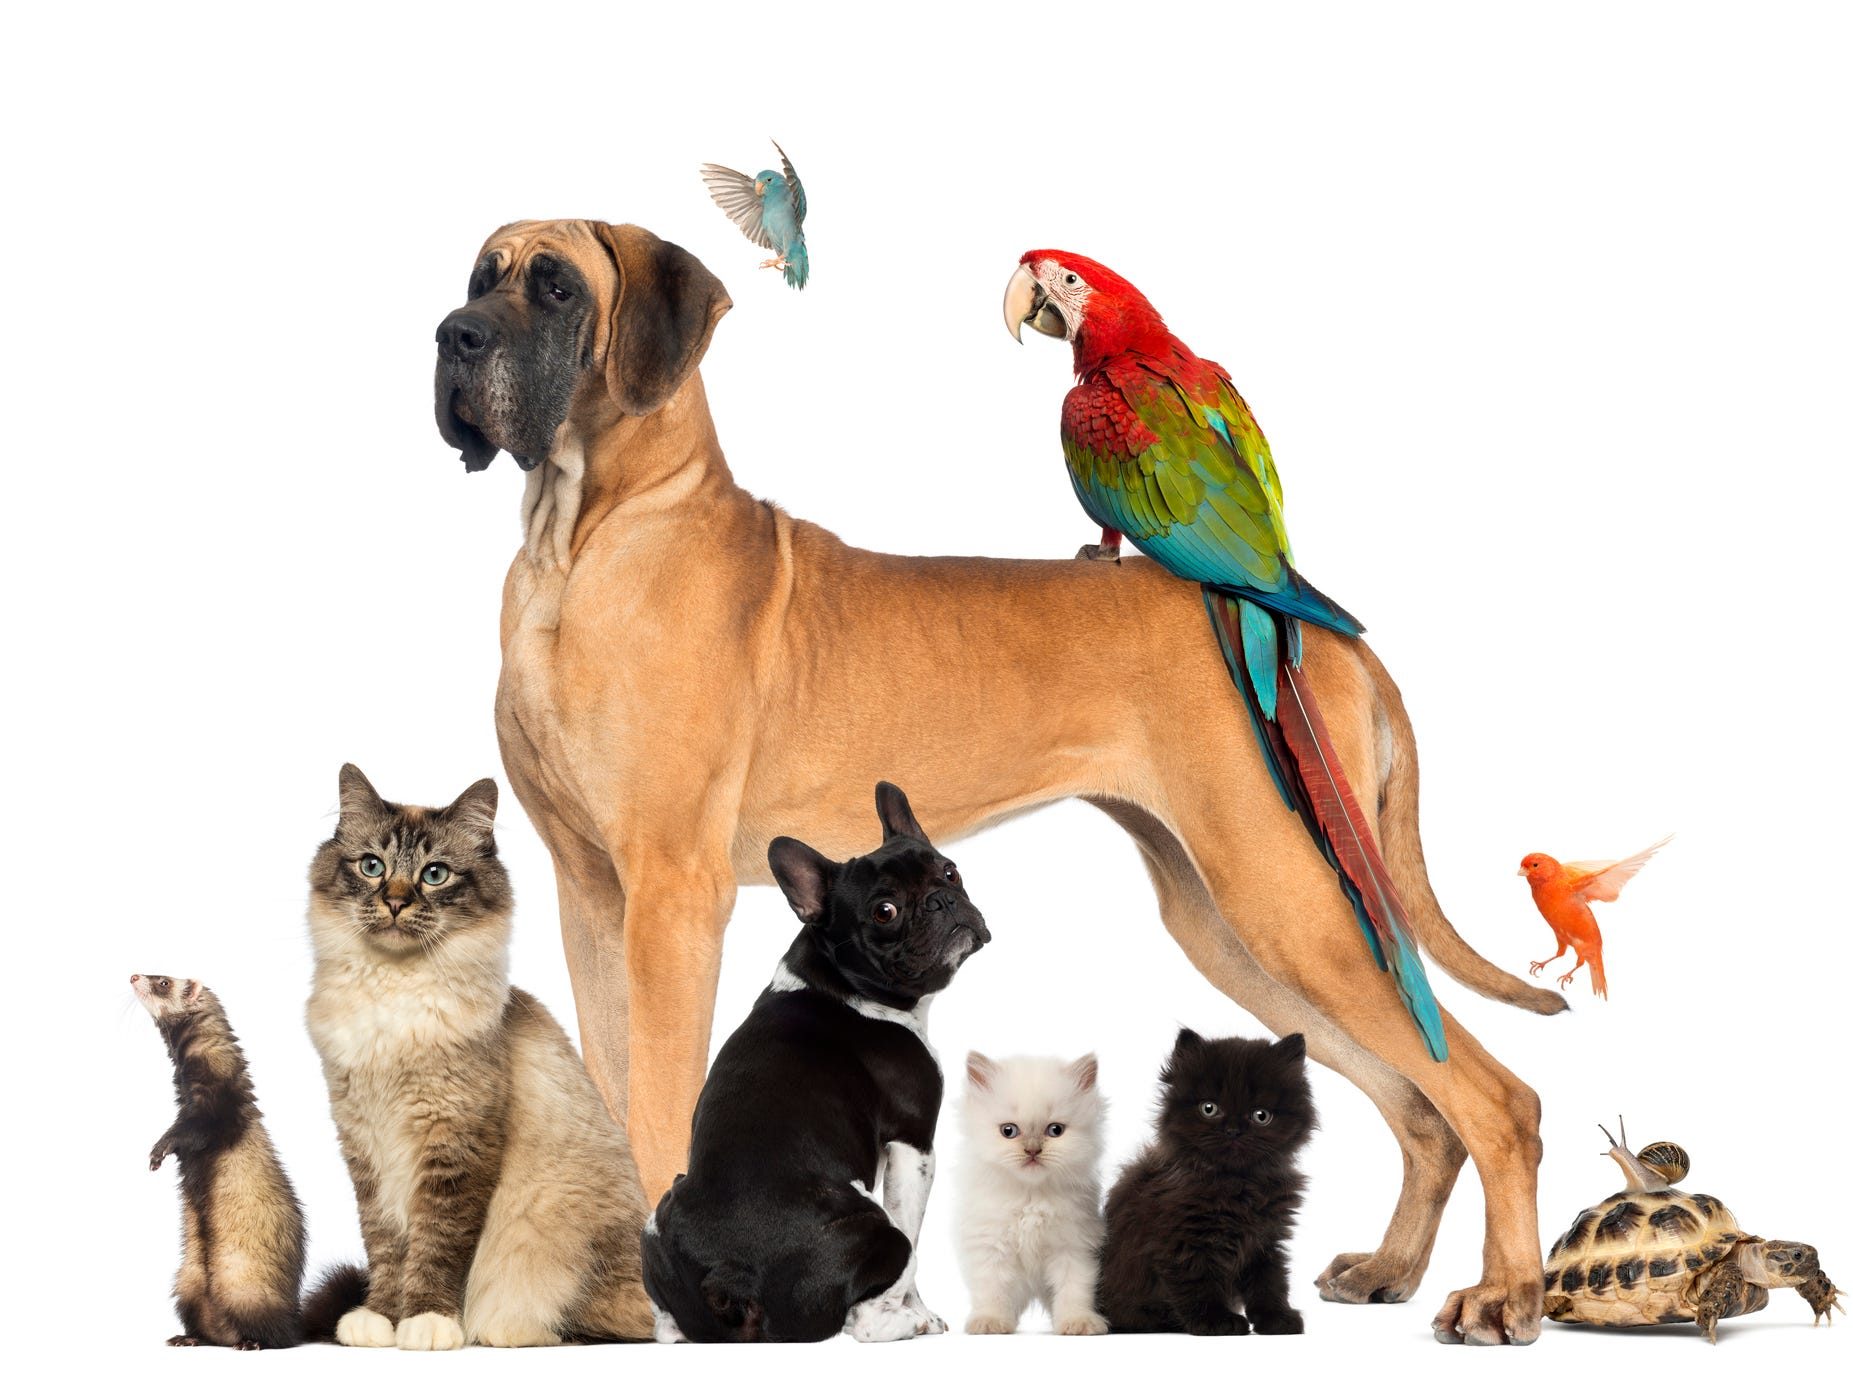 Insiders receive 20% OFF pet boarding at Kindness Animal Hospital in Cape Coral.